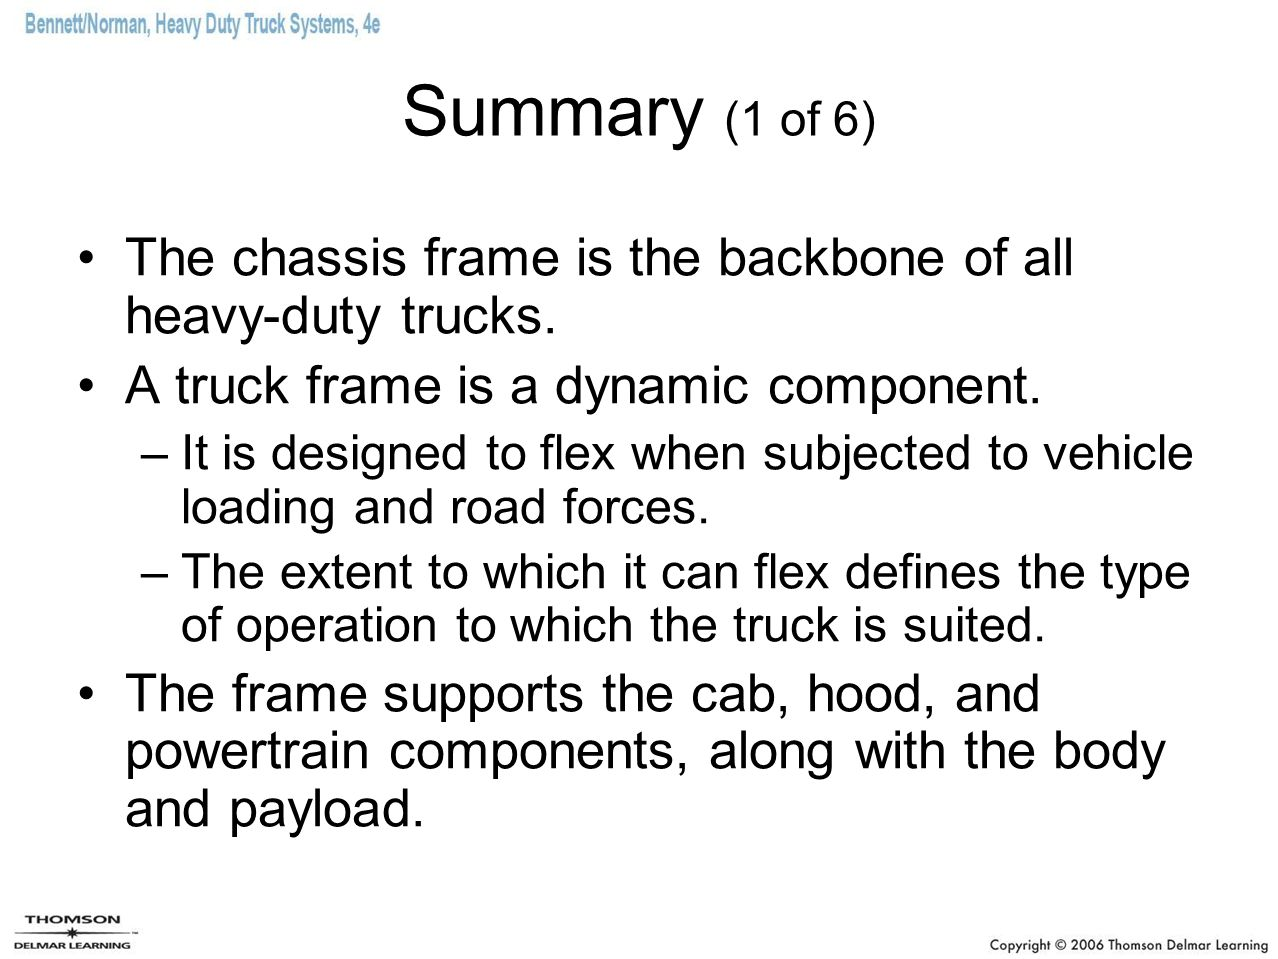 Summary (1 of 6) The chassis frame is the backbone of all heavy-duty trucks. A truck frame is a dynamic component.